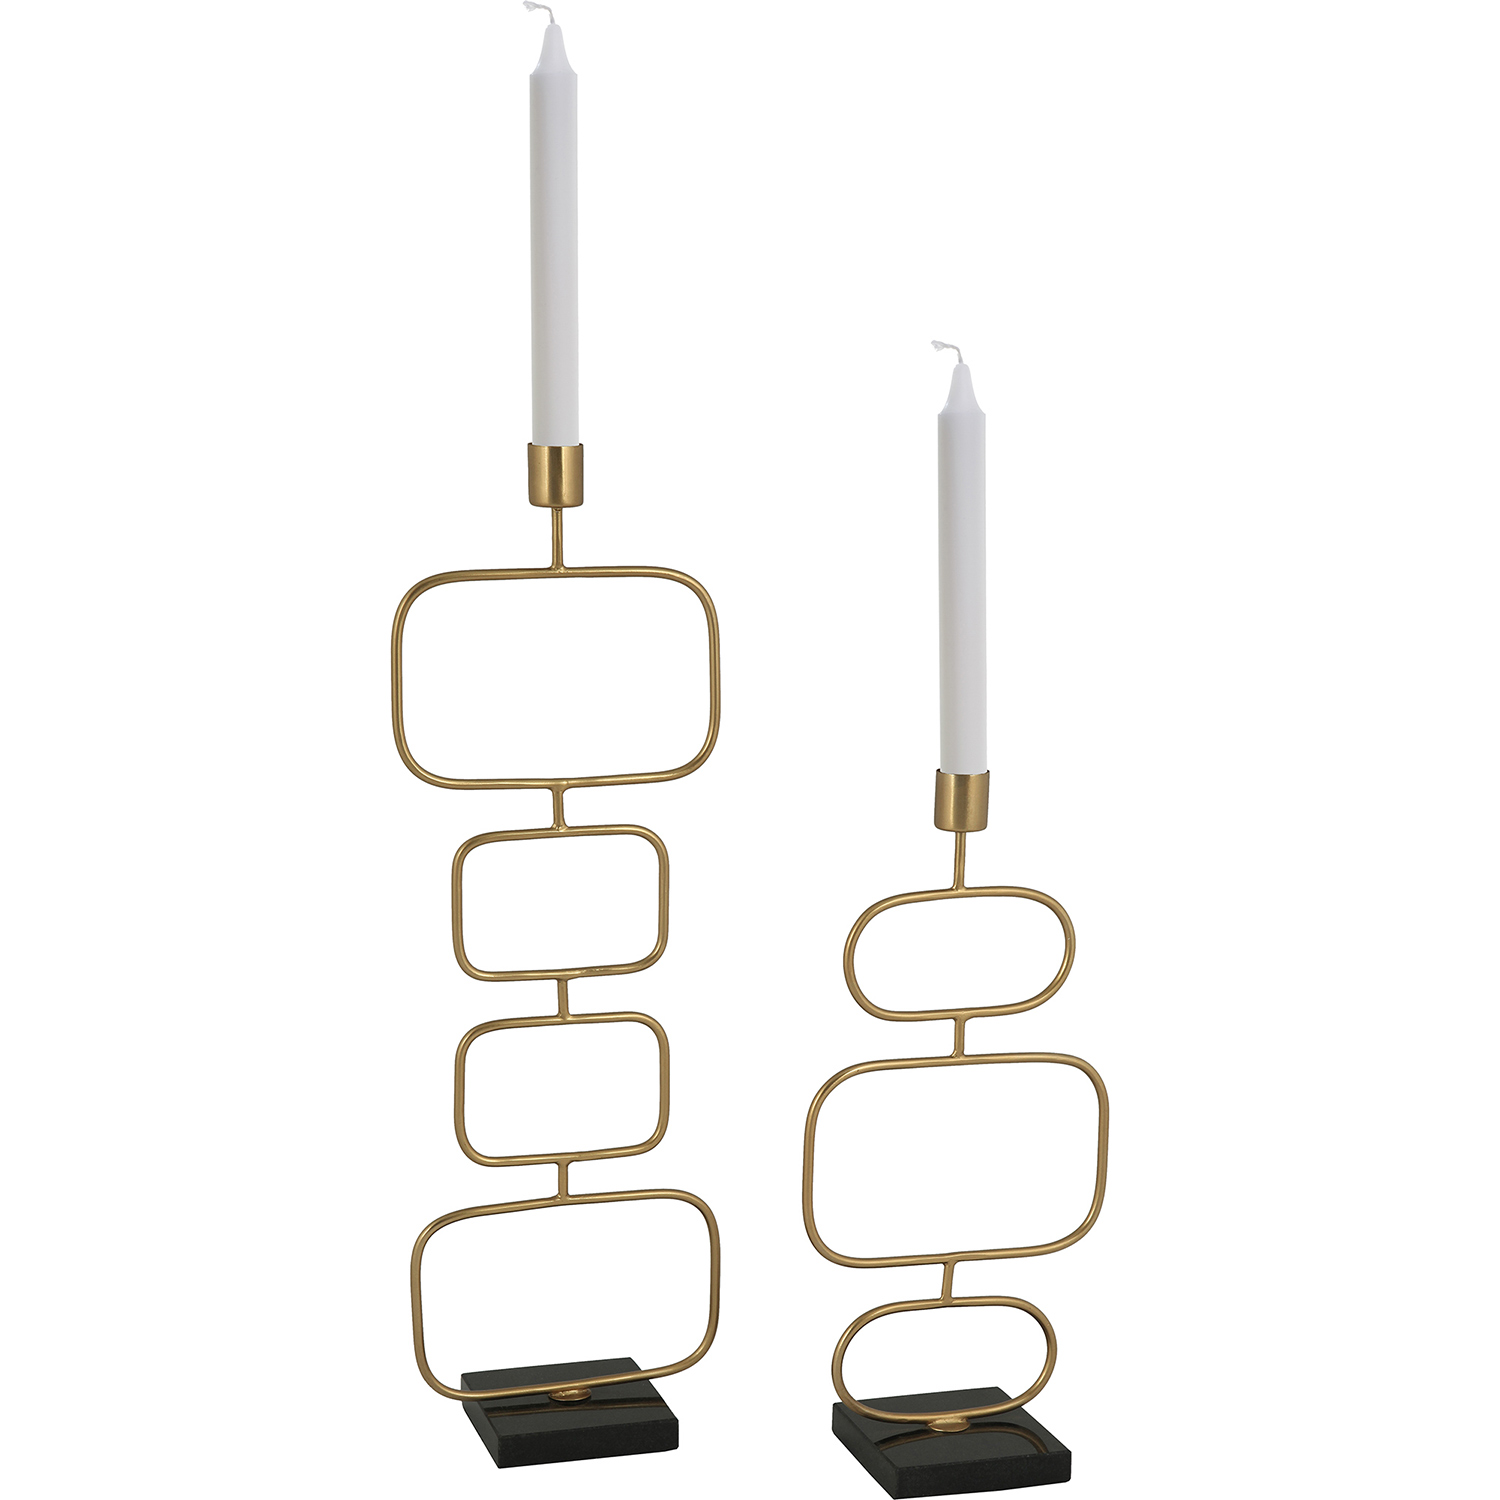 Ren-Wil Dynah Candle Holder - Gold EPL